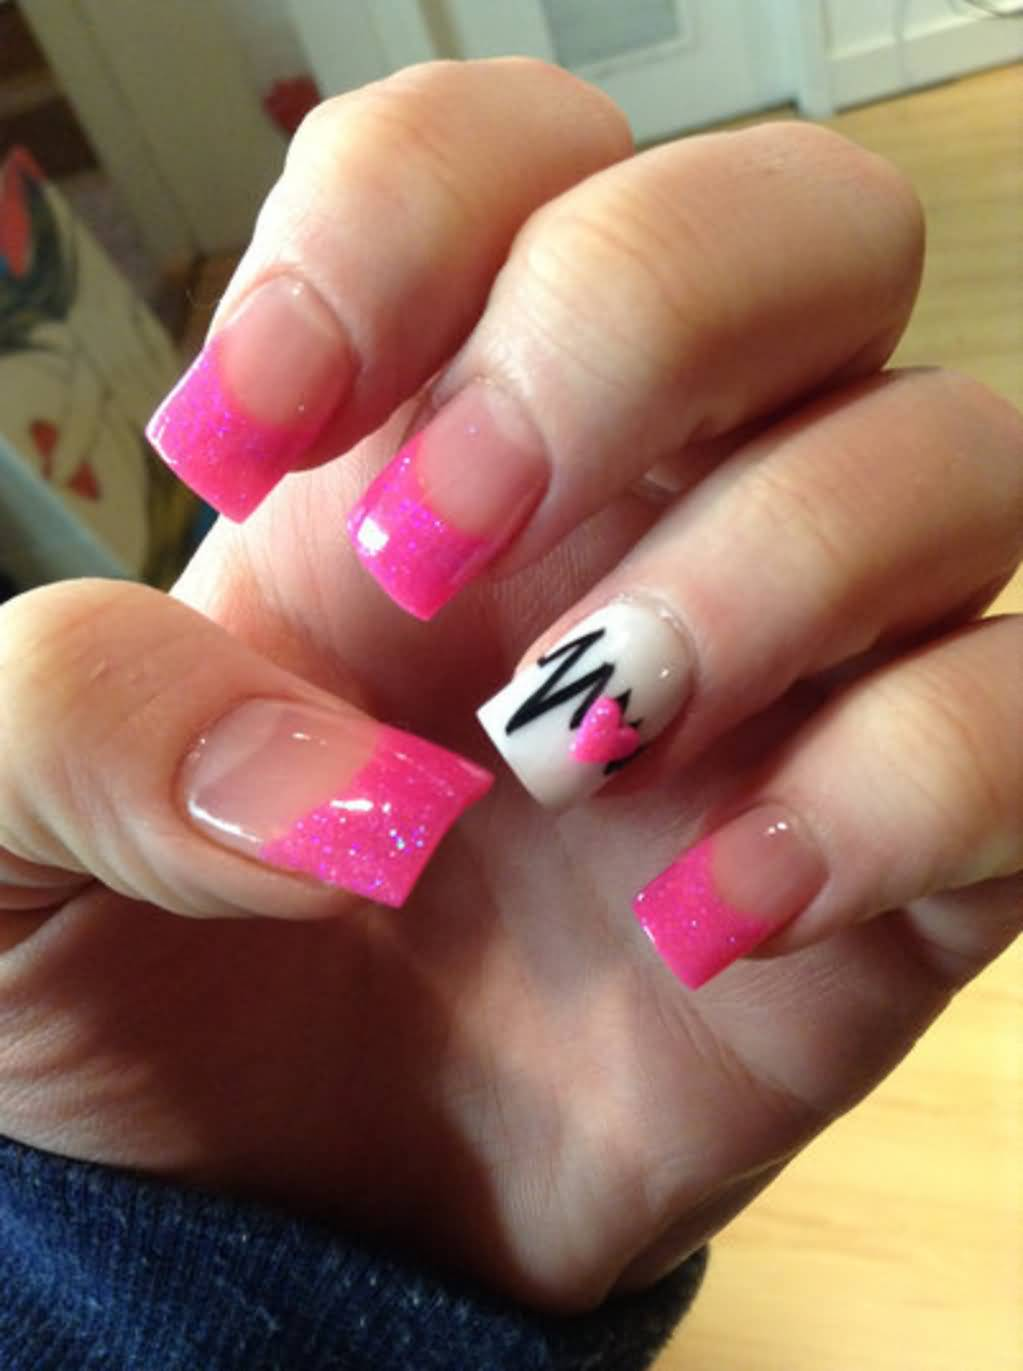 accent pink 3d heart and black heartbeat nail design idea - Nail Design Ideas